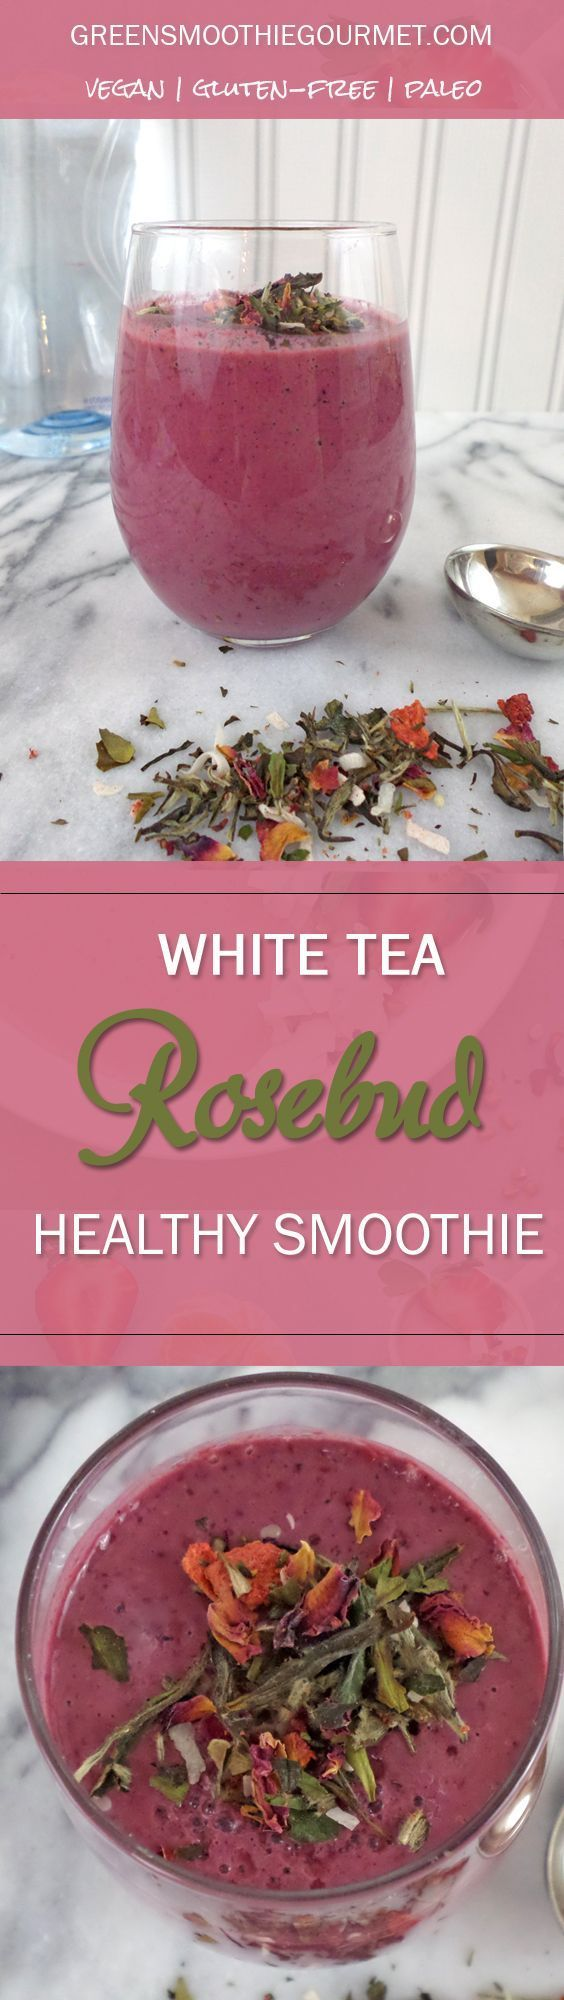 White tea is helpful in weight loss journeys and richer than Green tea in antioxidants!